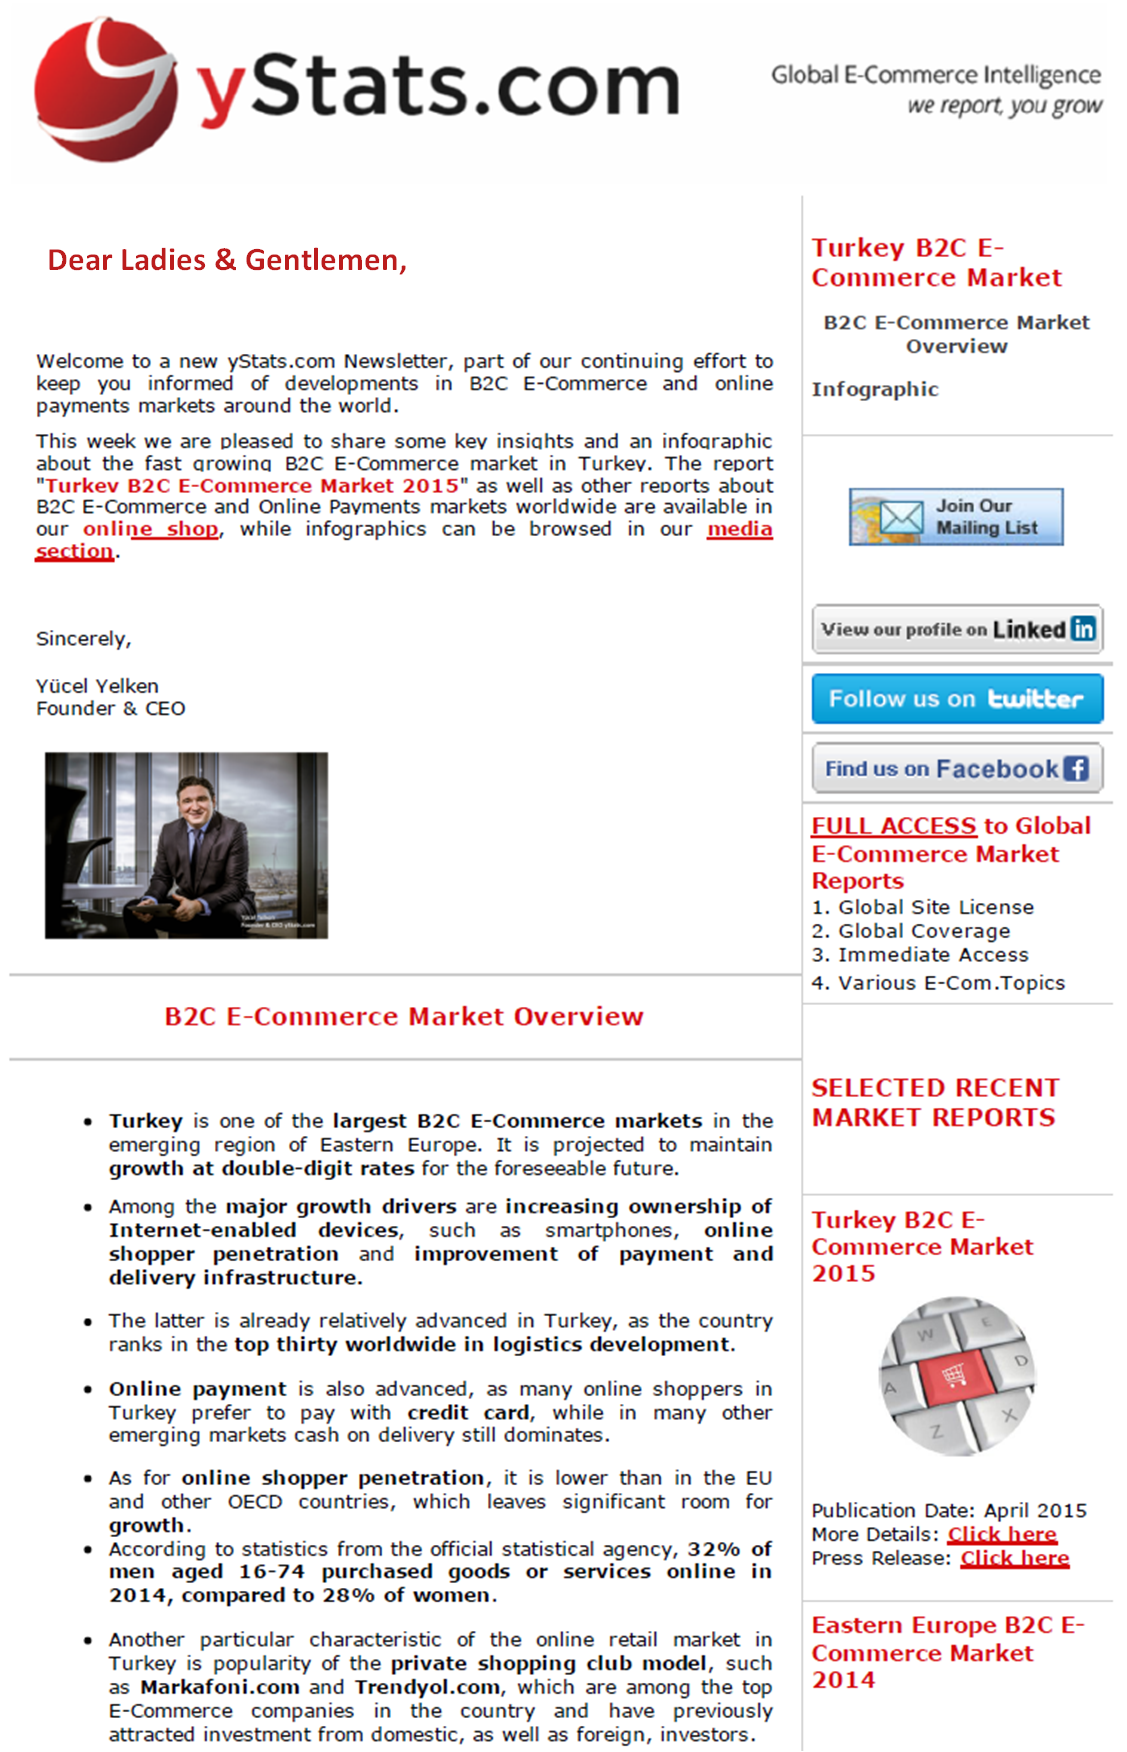 yStats.com forecasts B2C E-Commerce market in Turkey to double by 2019  Turkey is one of the largest and fastest growing B2C E-Commerce markets in Eastern Europe. It ranks in the top thirty countries worldwide by logistics development. Payment infrastructure is relatively advanced here, with the dominant online payment method being credit card, while in many other emerging markets it is still cash on delivery.  According to yStats.com's own forecast, by 2019 B2C E-Commerce in Turkey is expected to more than double the 2014 sales value.  In terms of Internet and online shopper penetration, Turkey ranks on the median level among other emerging markets worldwide, but by mobile shopper penetration it tops even some advanced markets and ranks among the leaders. Compared to EU and OECD countries, Turkey is still behind in terms of share of individuals having Internet access and the percentage of Internet users shopping online, indicating plenty of room for growth.  Among the most important trends on the B2C E-Commerce market in Turkey are M-Commerce and cross-border online shopping. With mobile internet accounting for three quarters of all Internet subscriptions, some online merchants report a two-digit percentage share of revenues coming from M-Commerce. Close to one third of online shoppers in Turkey made a purchase from both local and foreign websites last year, with the known international websites such as Alibaba.com and Amazon.com gaining in popularity.  The largest domestic B2C E-Commerce player in Turkey is online mass merchant Hepsiburada.com. This year the company raised a multi-million dollar investment which it plans to spend on expanding logistics capabilities and launching a marketplace for third-party sellers. The marketplace is a popular E-Commerce model in Turkey, with prominent players such as GittiGidiyor.com owned by eBay and n11.com, launched by Turkish Dogus Group and South Korean SK Group. Fashion online stores are among the top players, as clothing